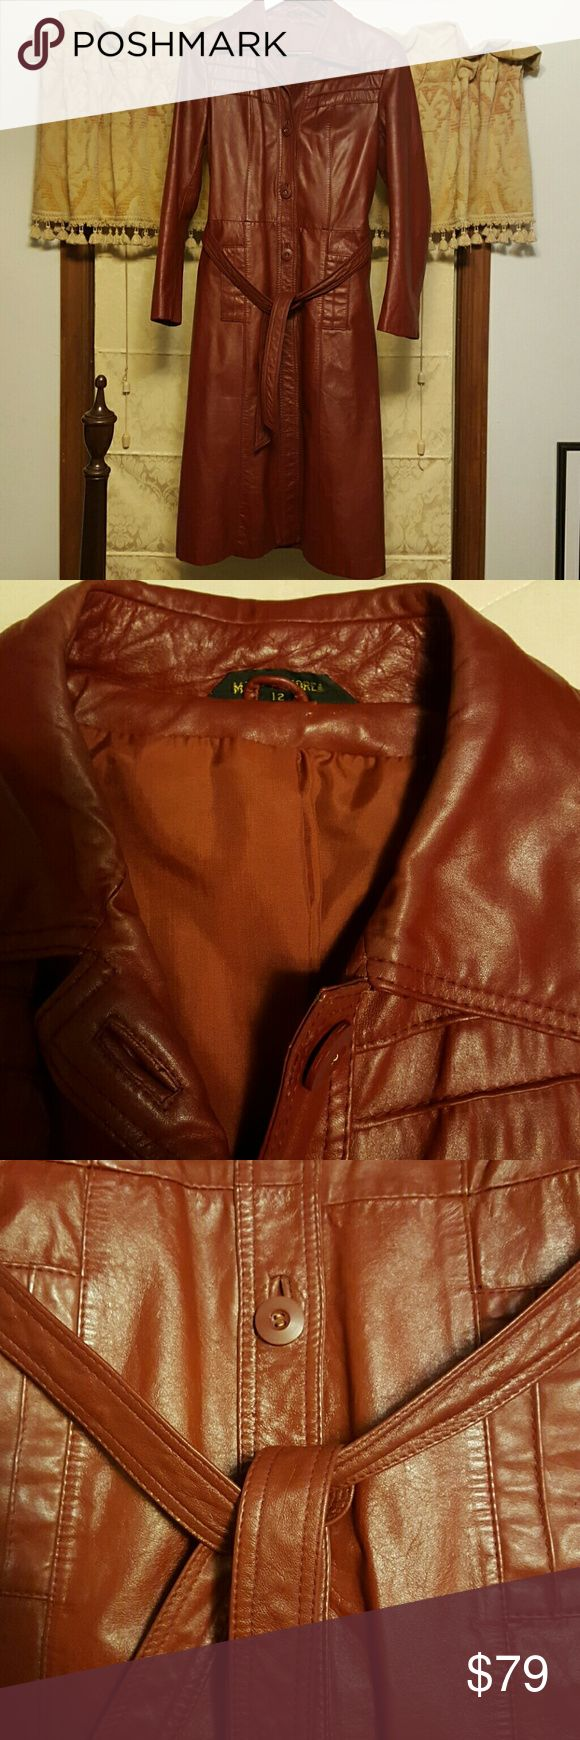 WOMEN'S LEATHER & SUEDE COATS AND JACKETS RED CLAY Full Length Leather Coat Made In Korea Made In KOREA  Jackets & Coats Trench Coats